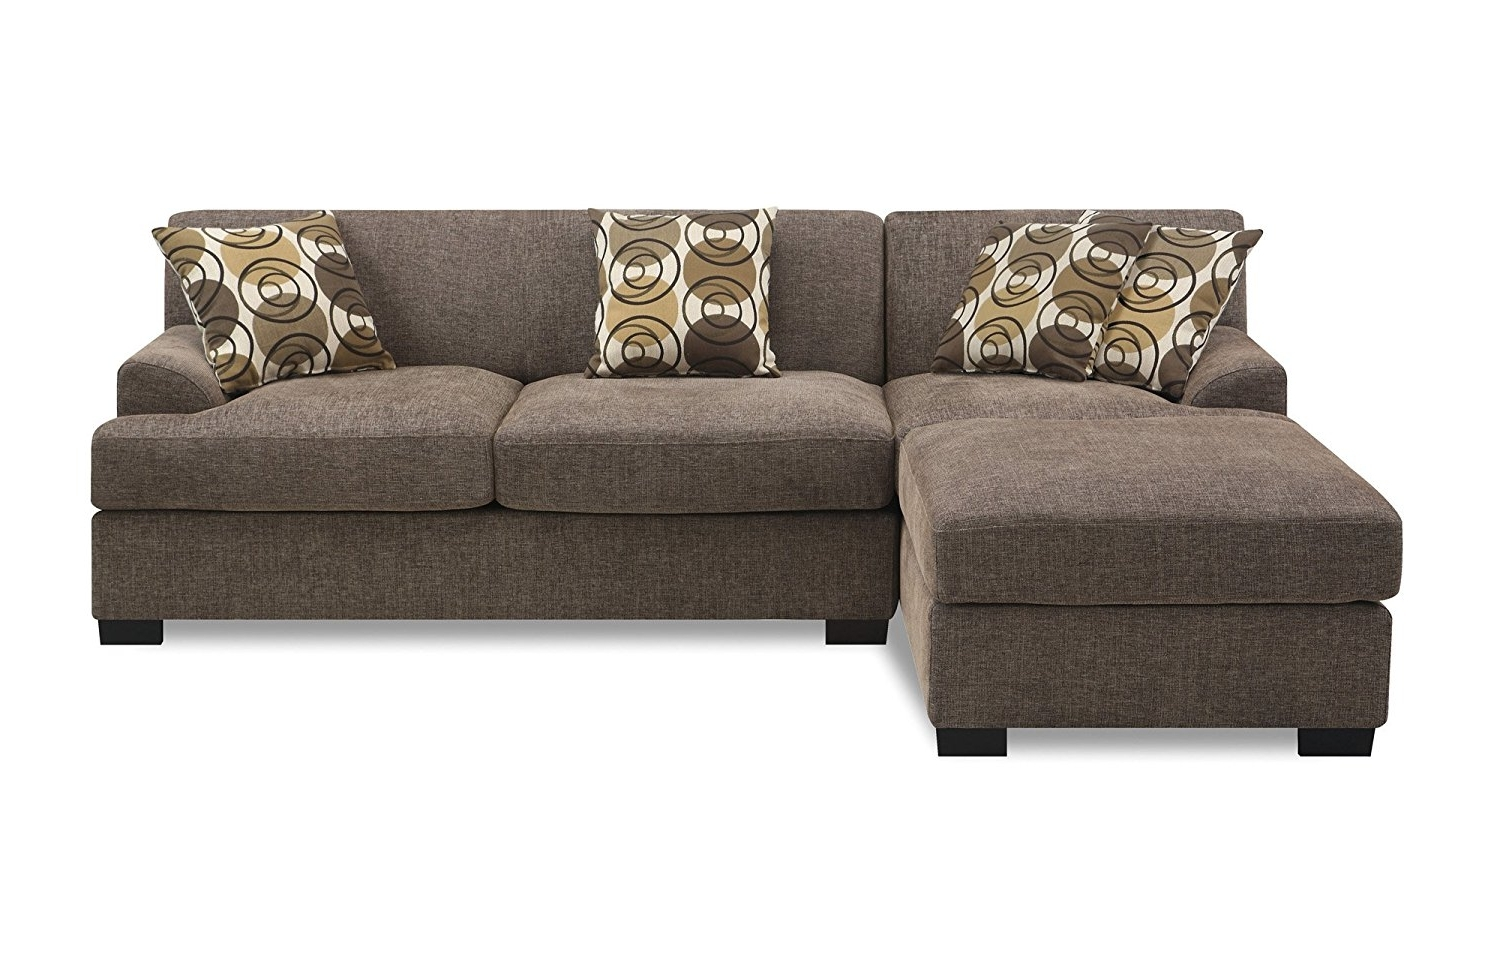 Most Recent Amazon: Poundex Montereal 2 Piece Chaise Love Sectional Pertaining To 2 Piece Sectionals With Chaise (View 15 of 15)